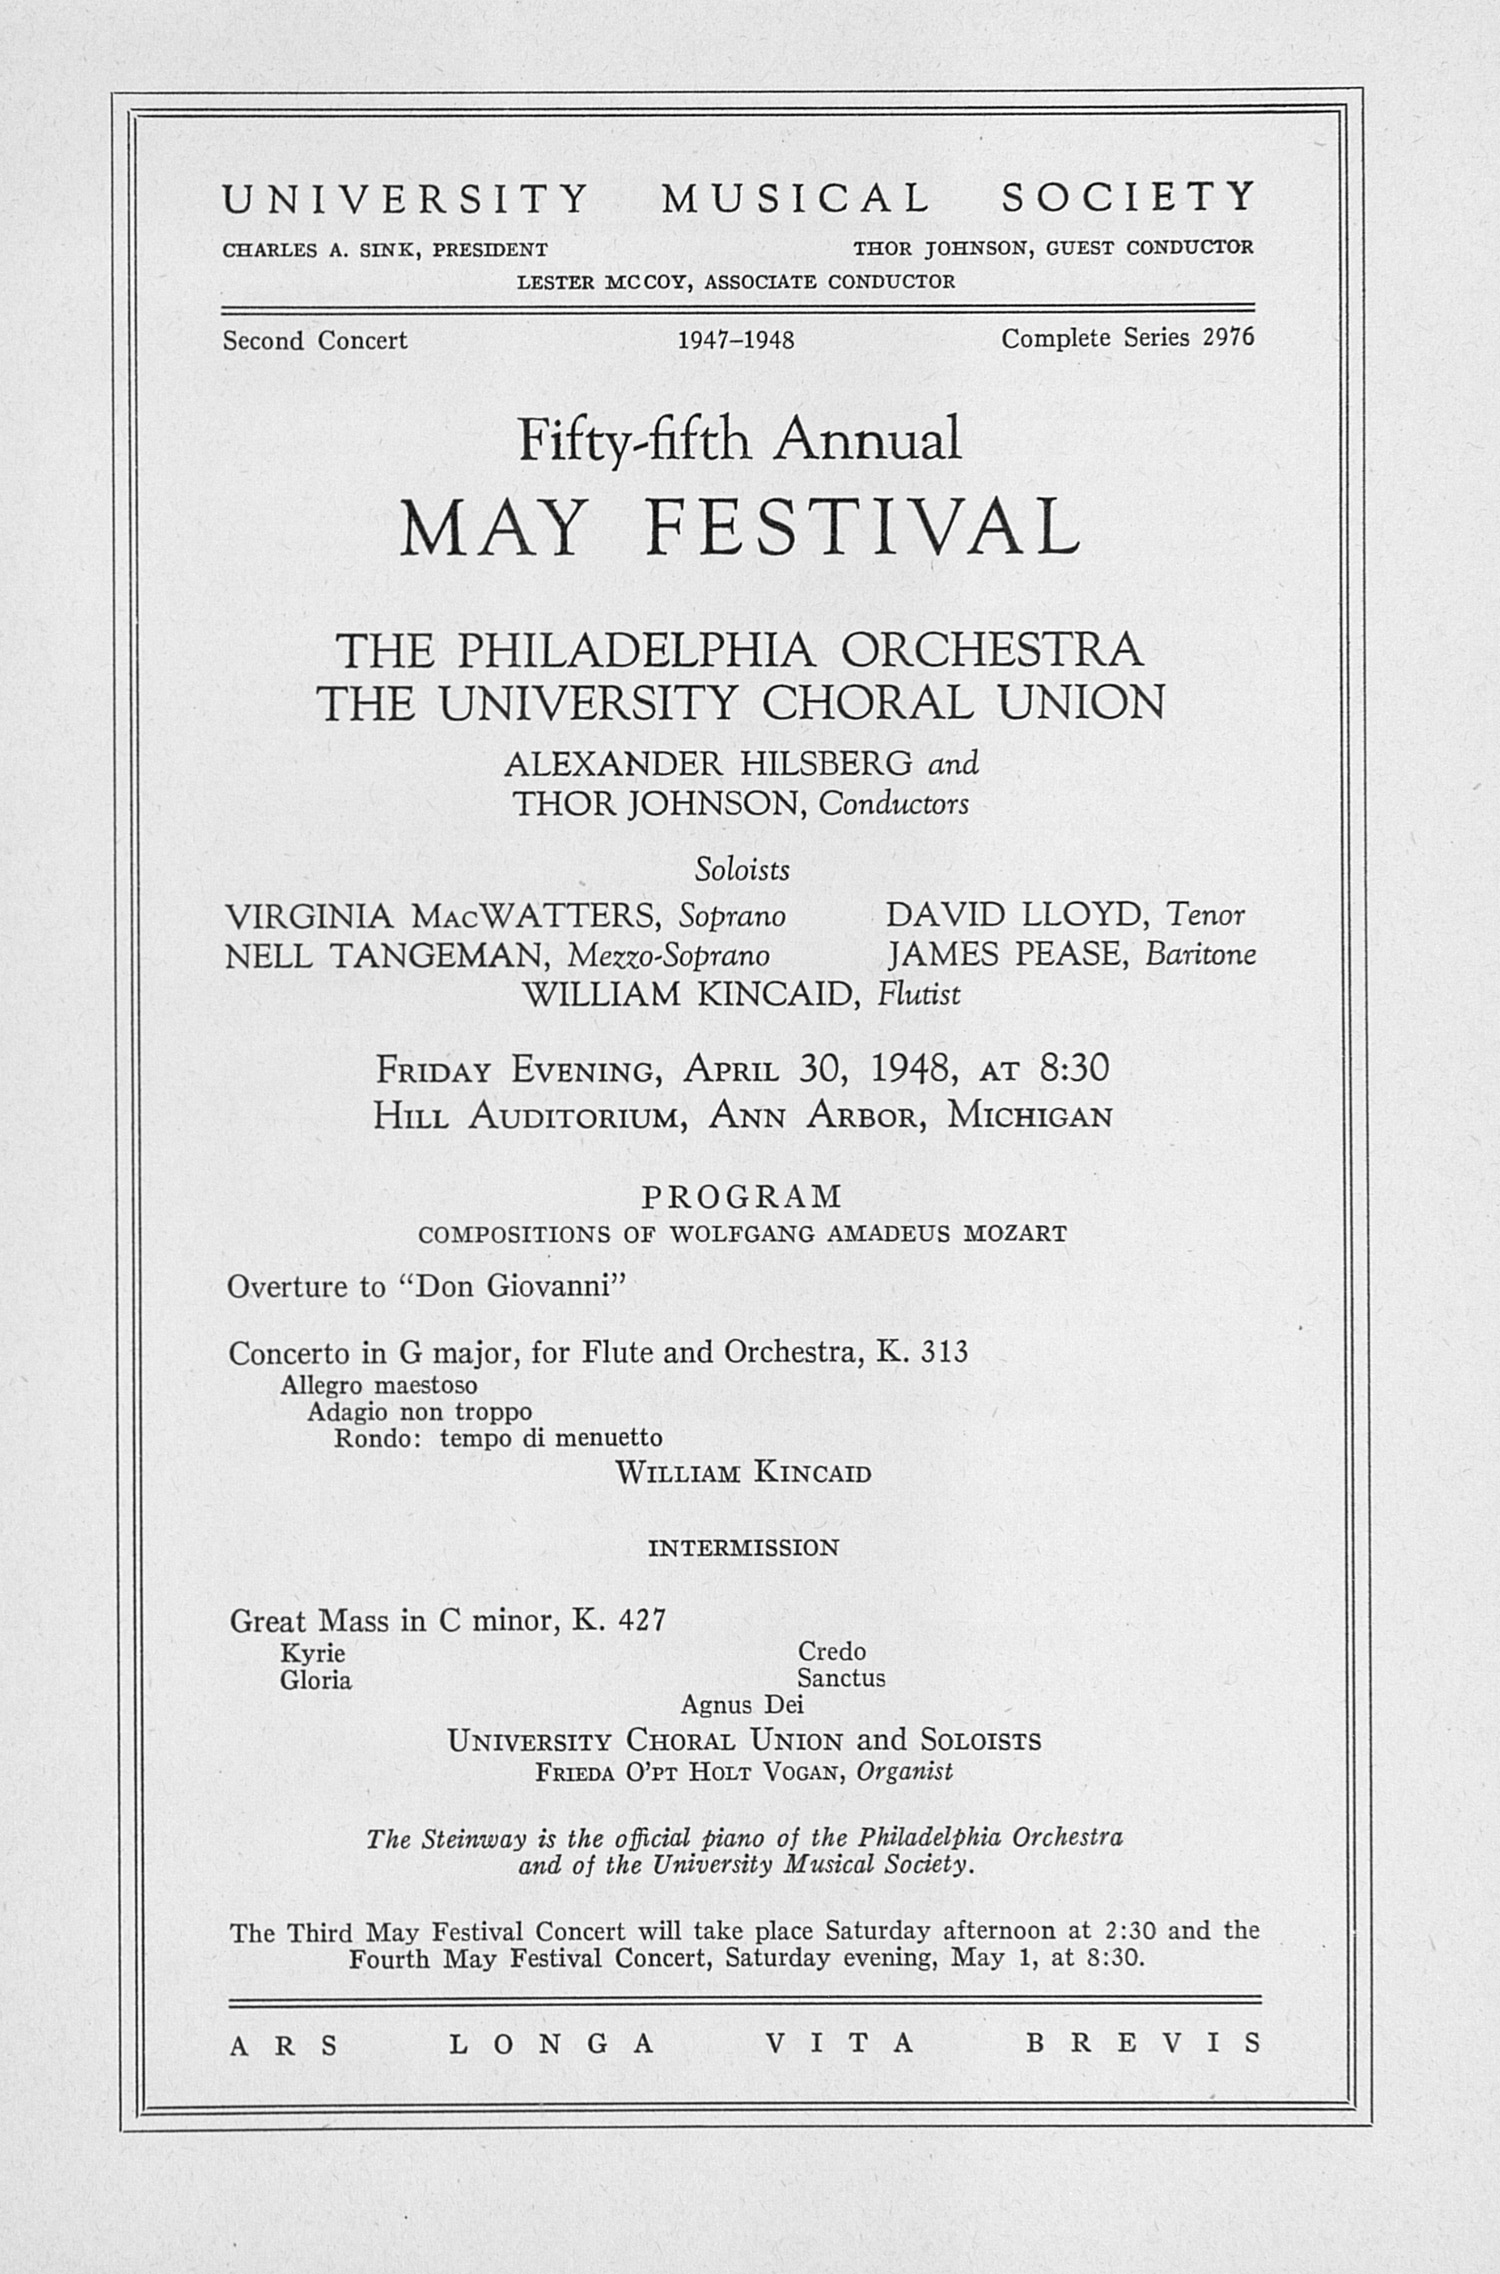 UMS Concert Program, April 30, 1948: Fifty-fifth Annual May Festival -- The Philadelphia Orchestra image